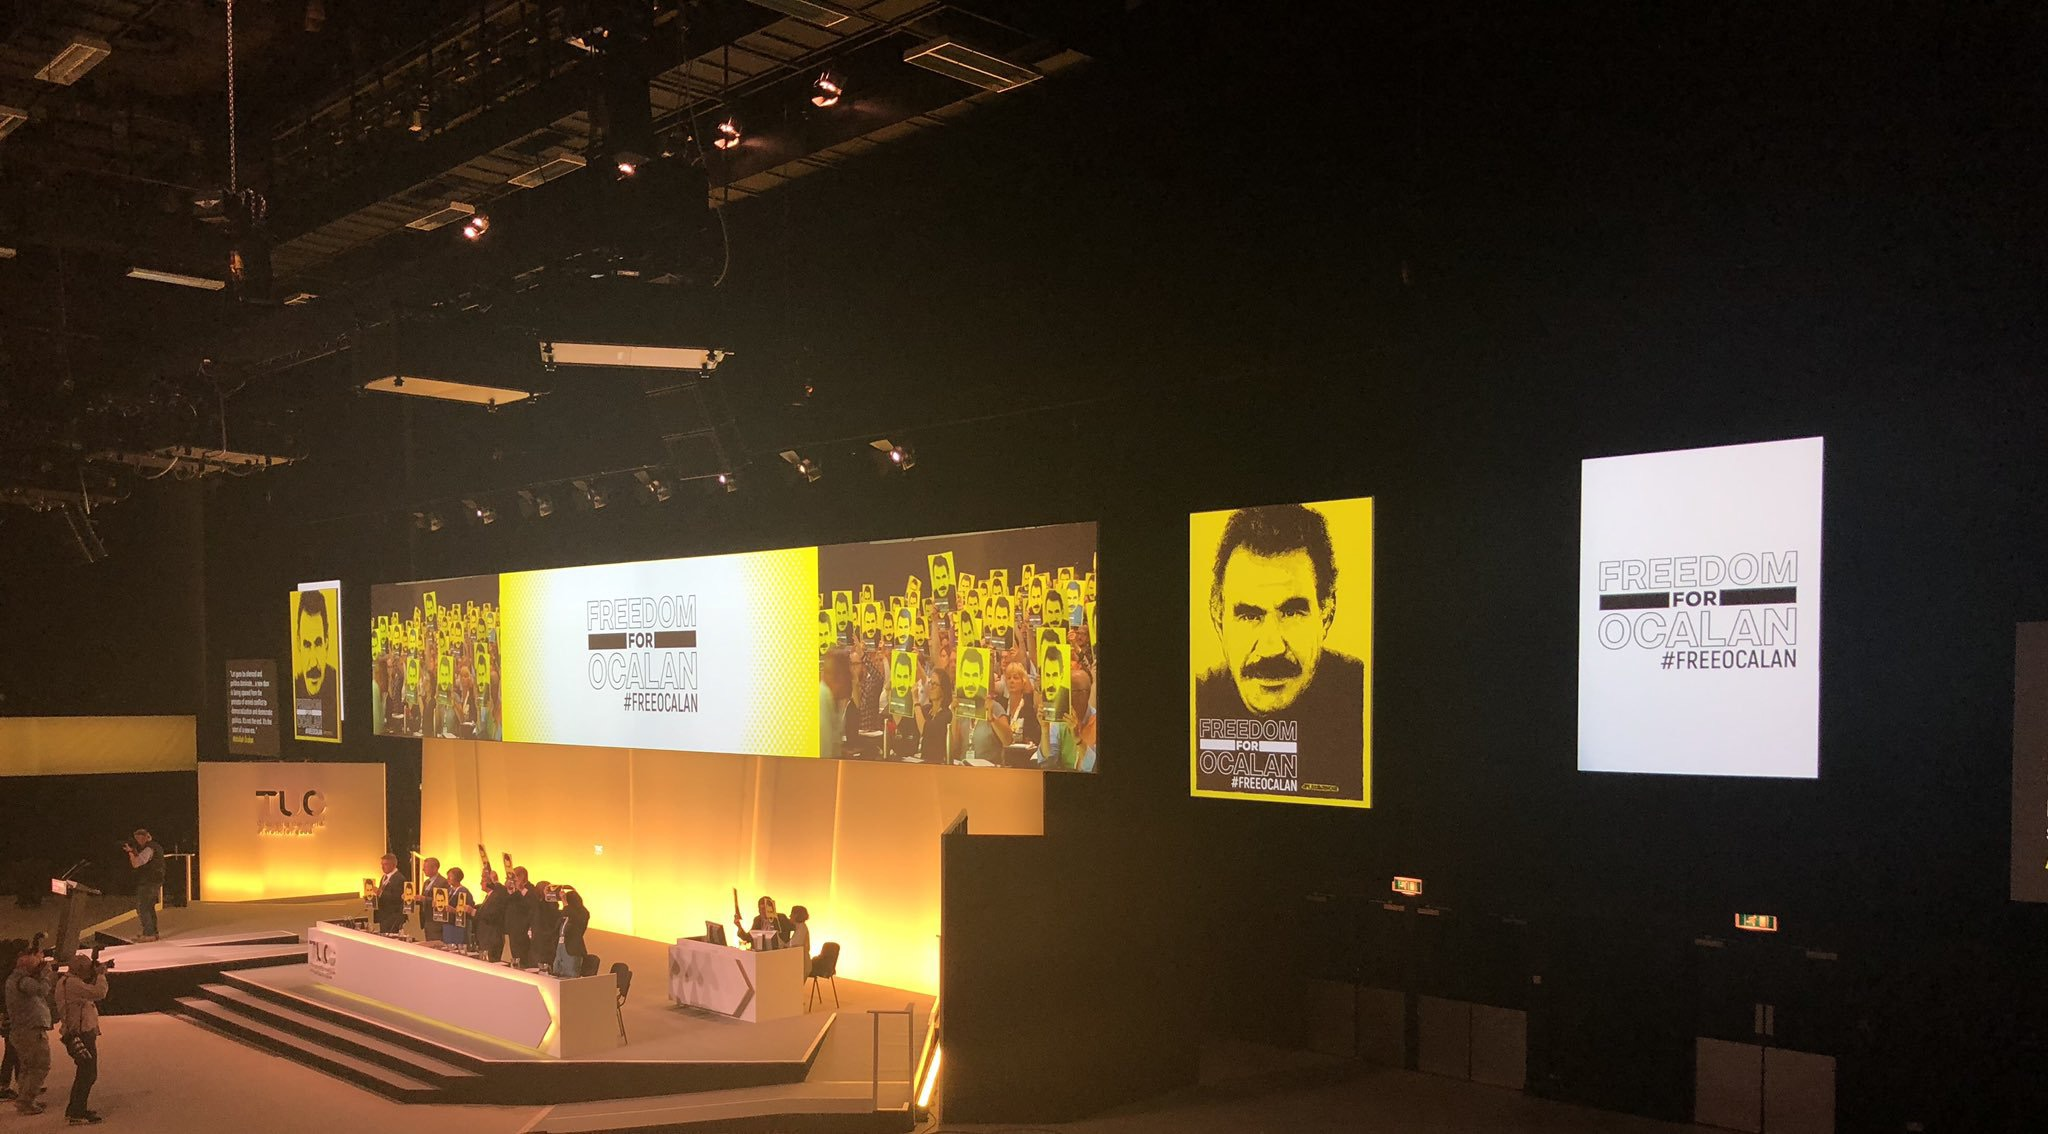 TUC Congress 2019 calls for freedom for ocalan